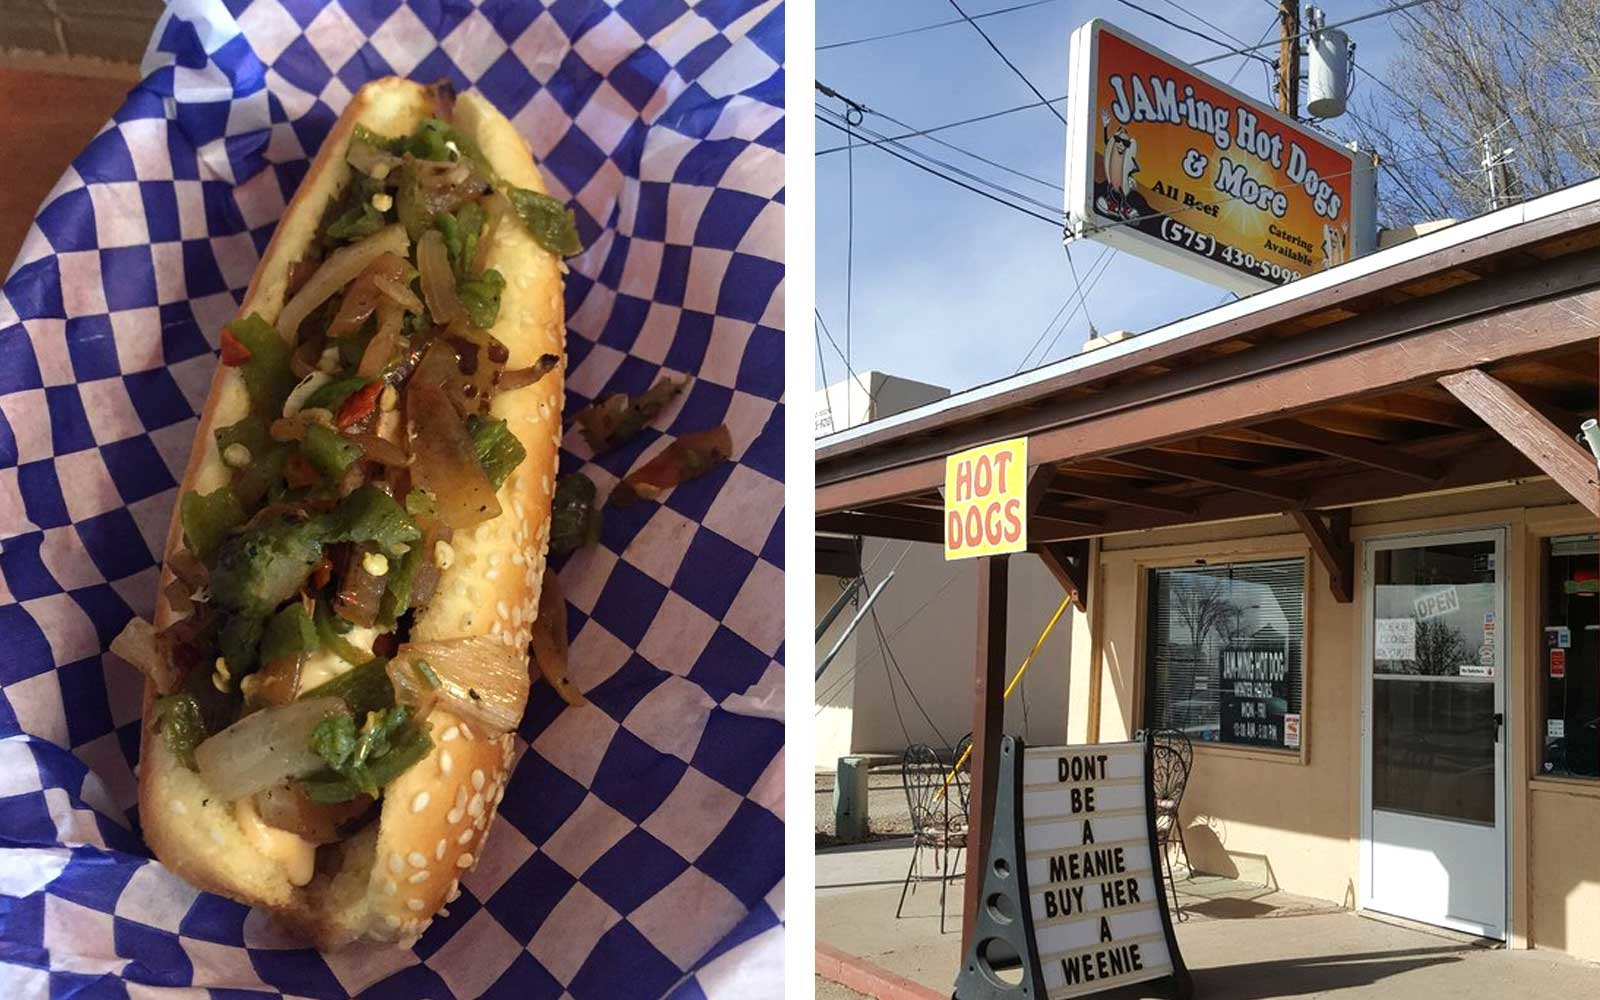 JAM-ing Hot Dogs & More, New Mexico